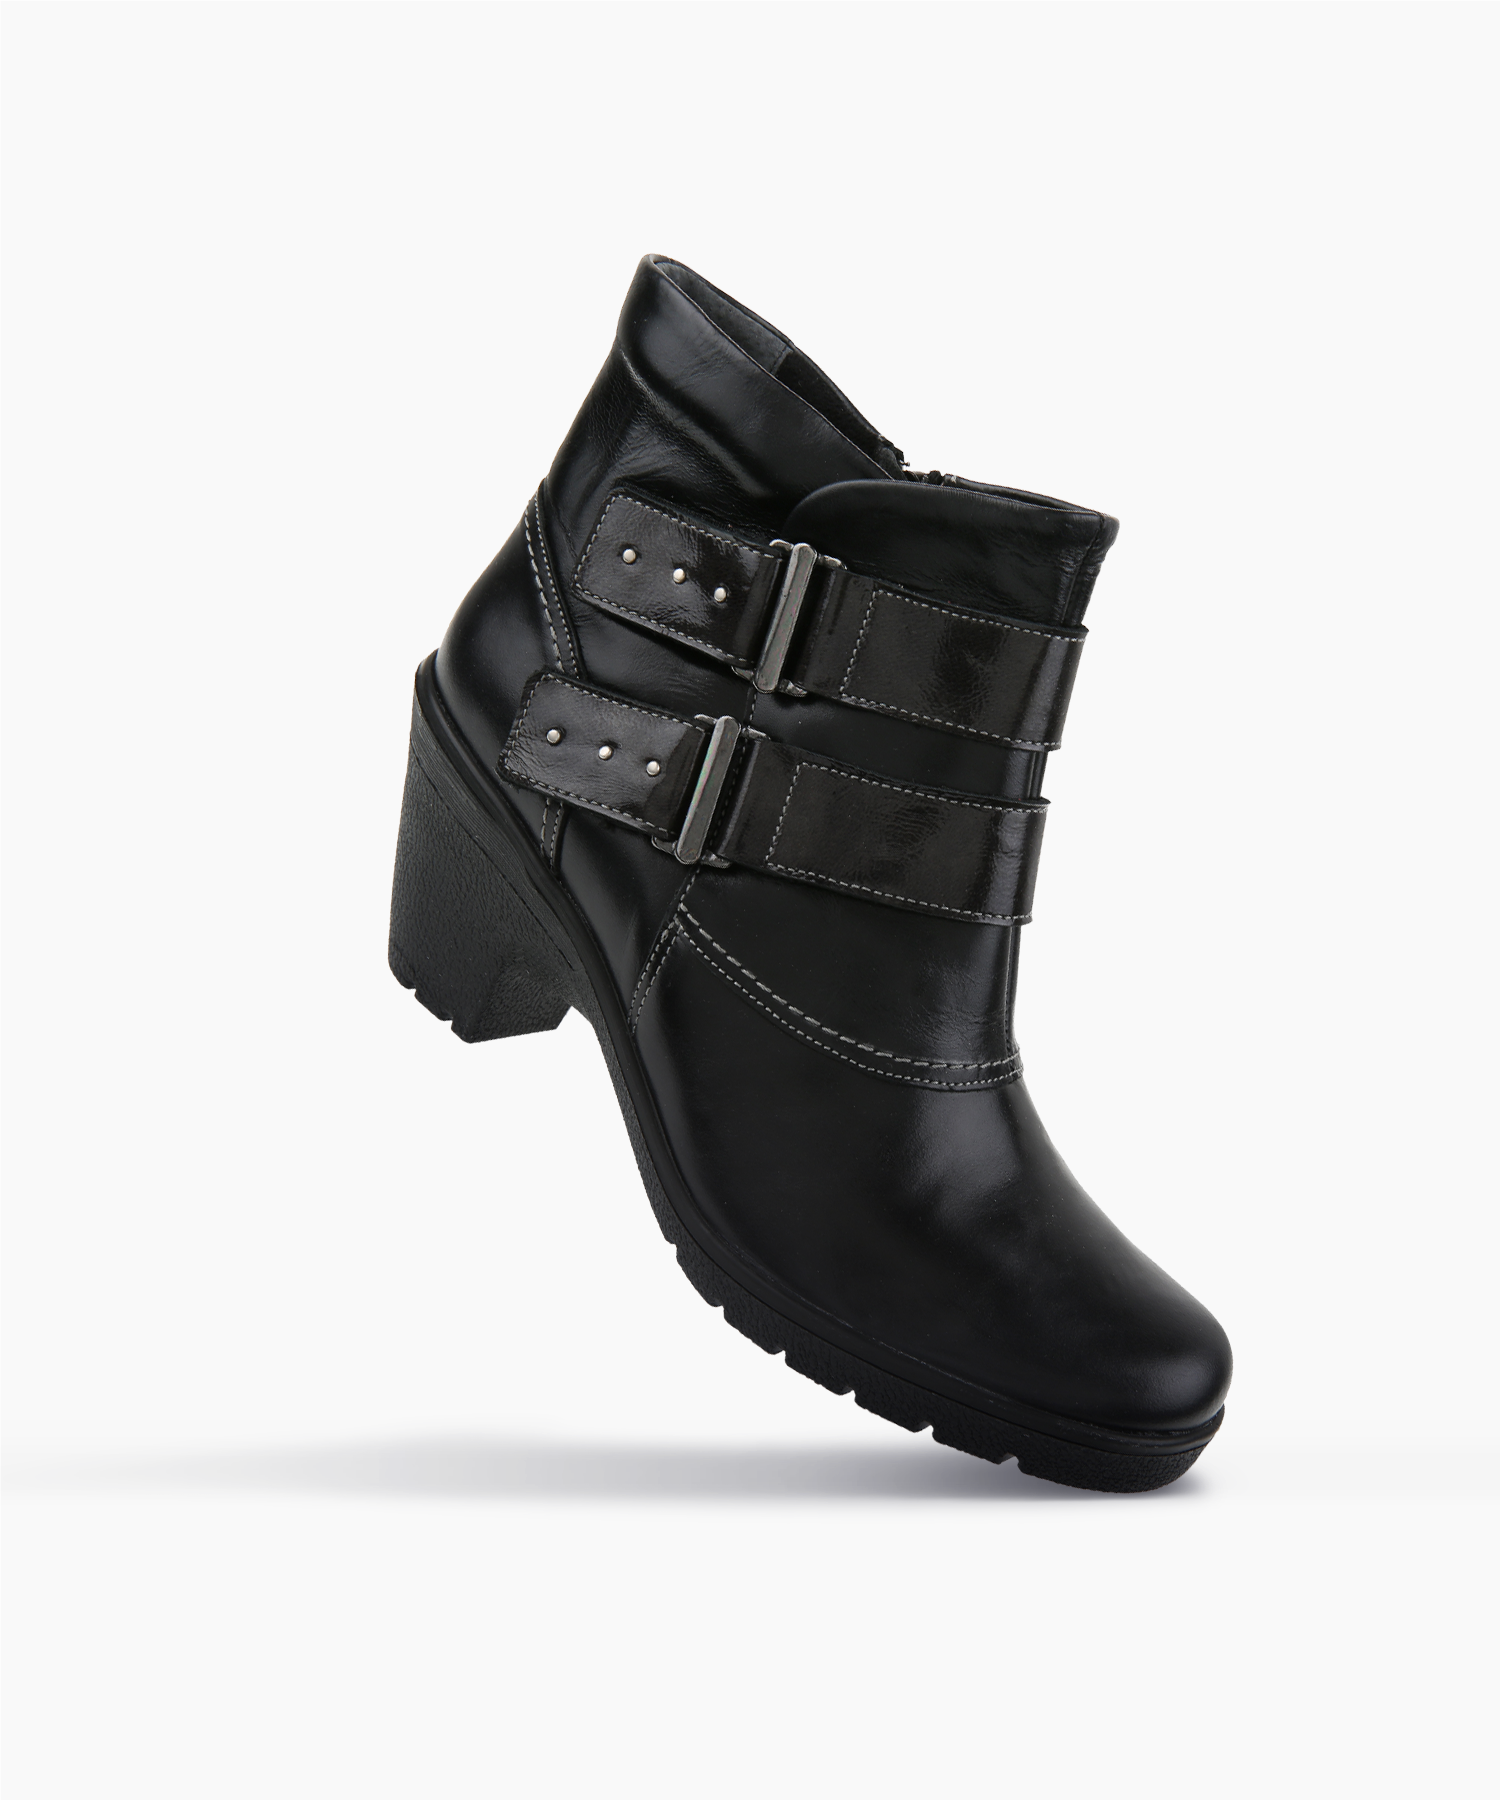 Bottines BESU Noir